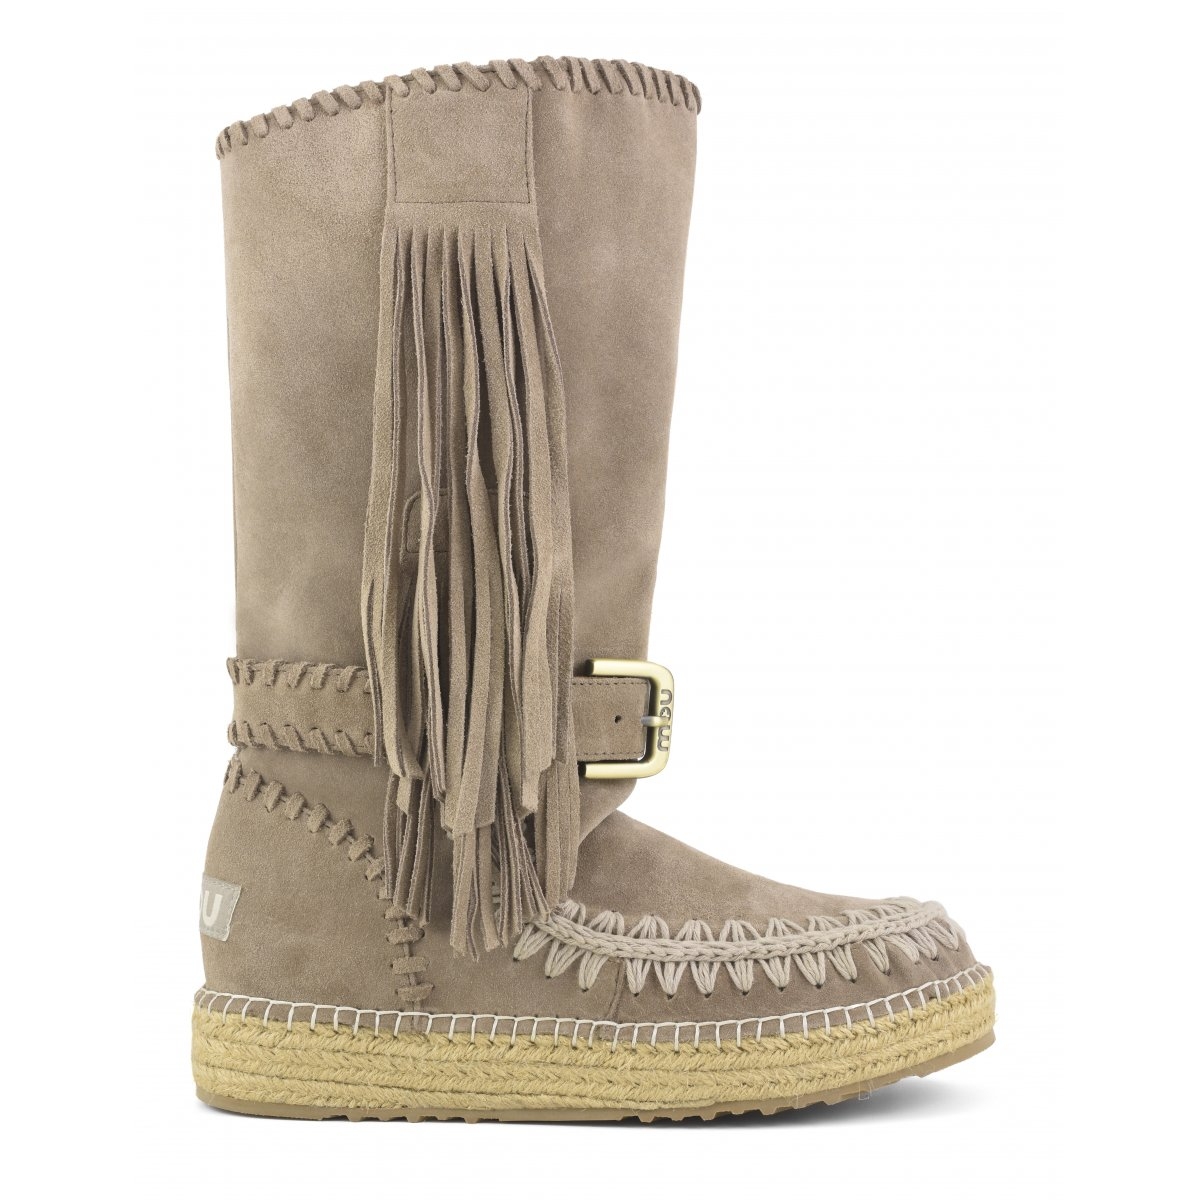 Indian Boot Jute Suede in Dkst from mou